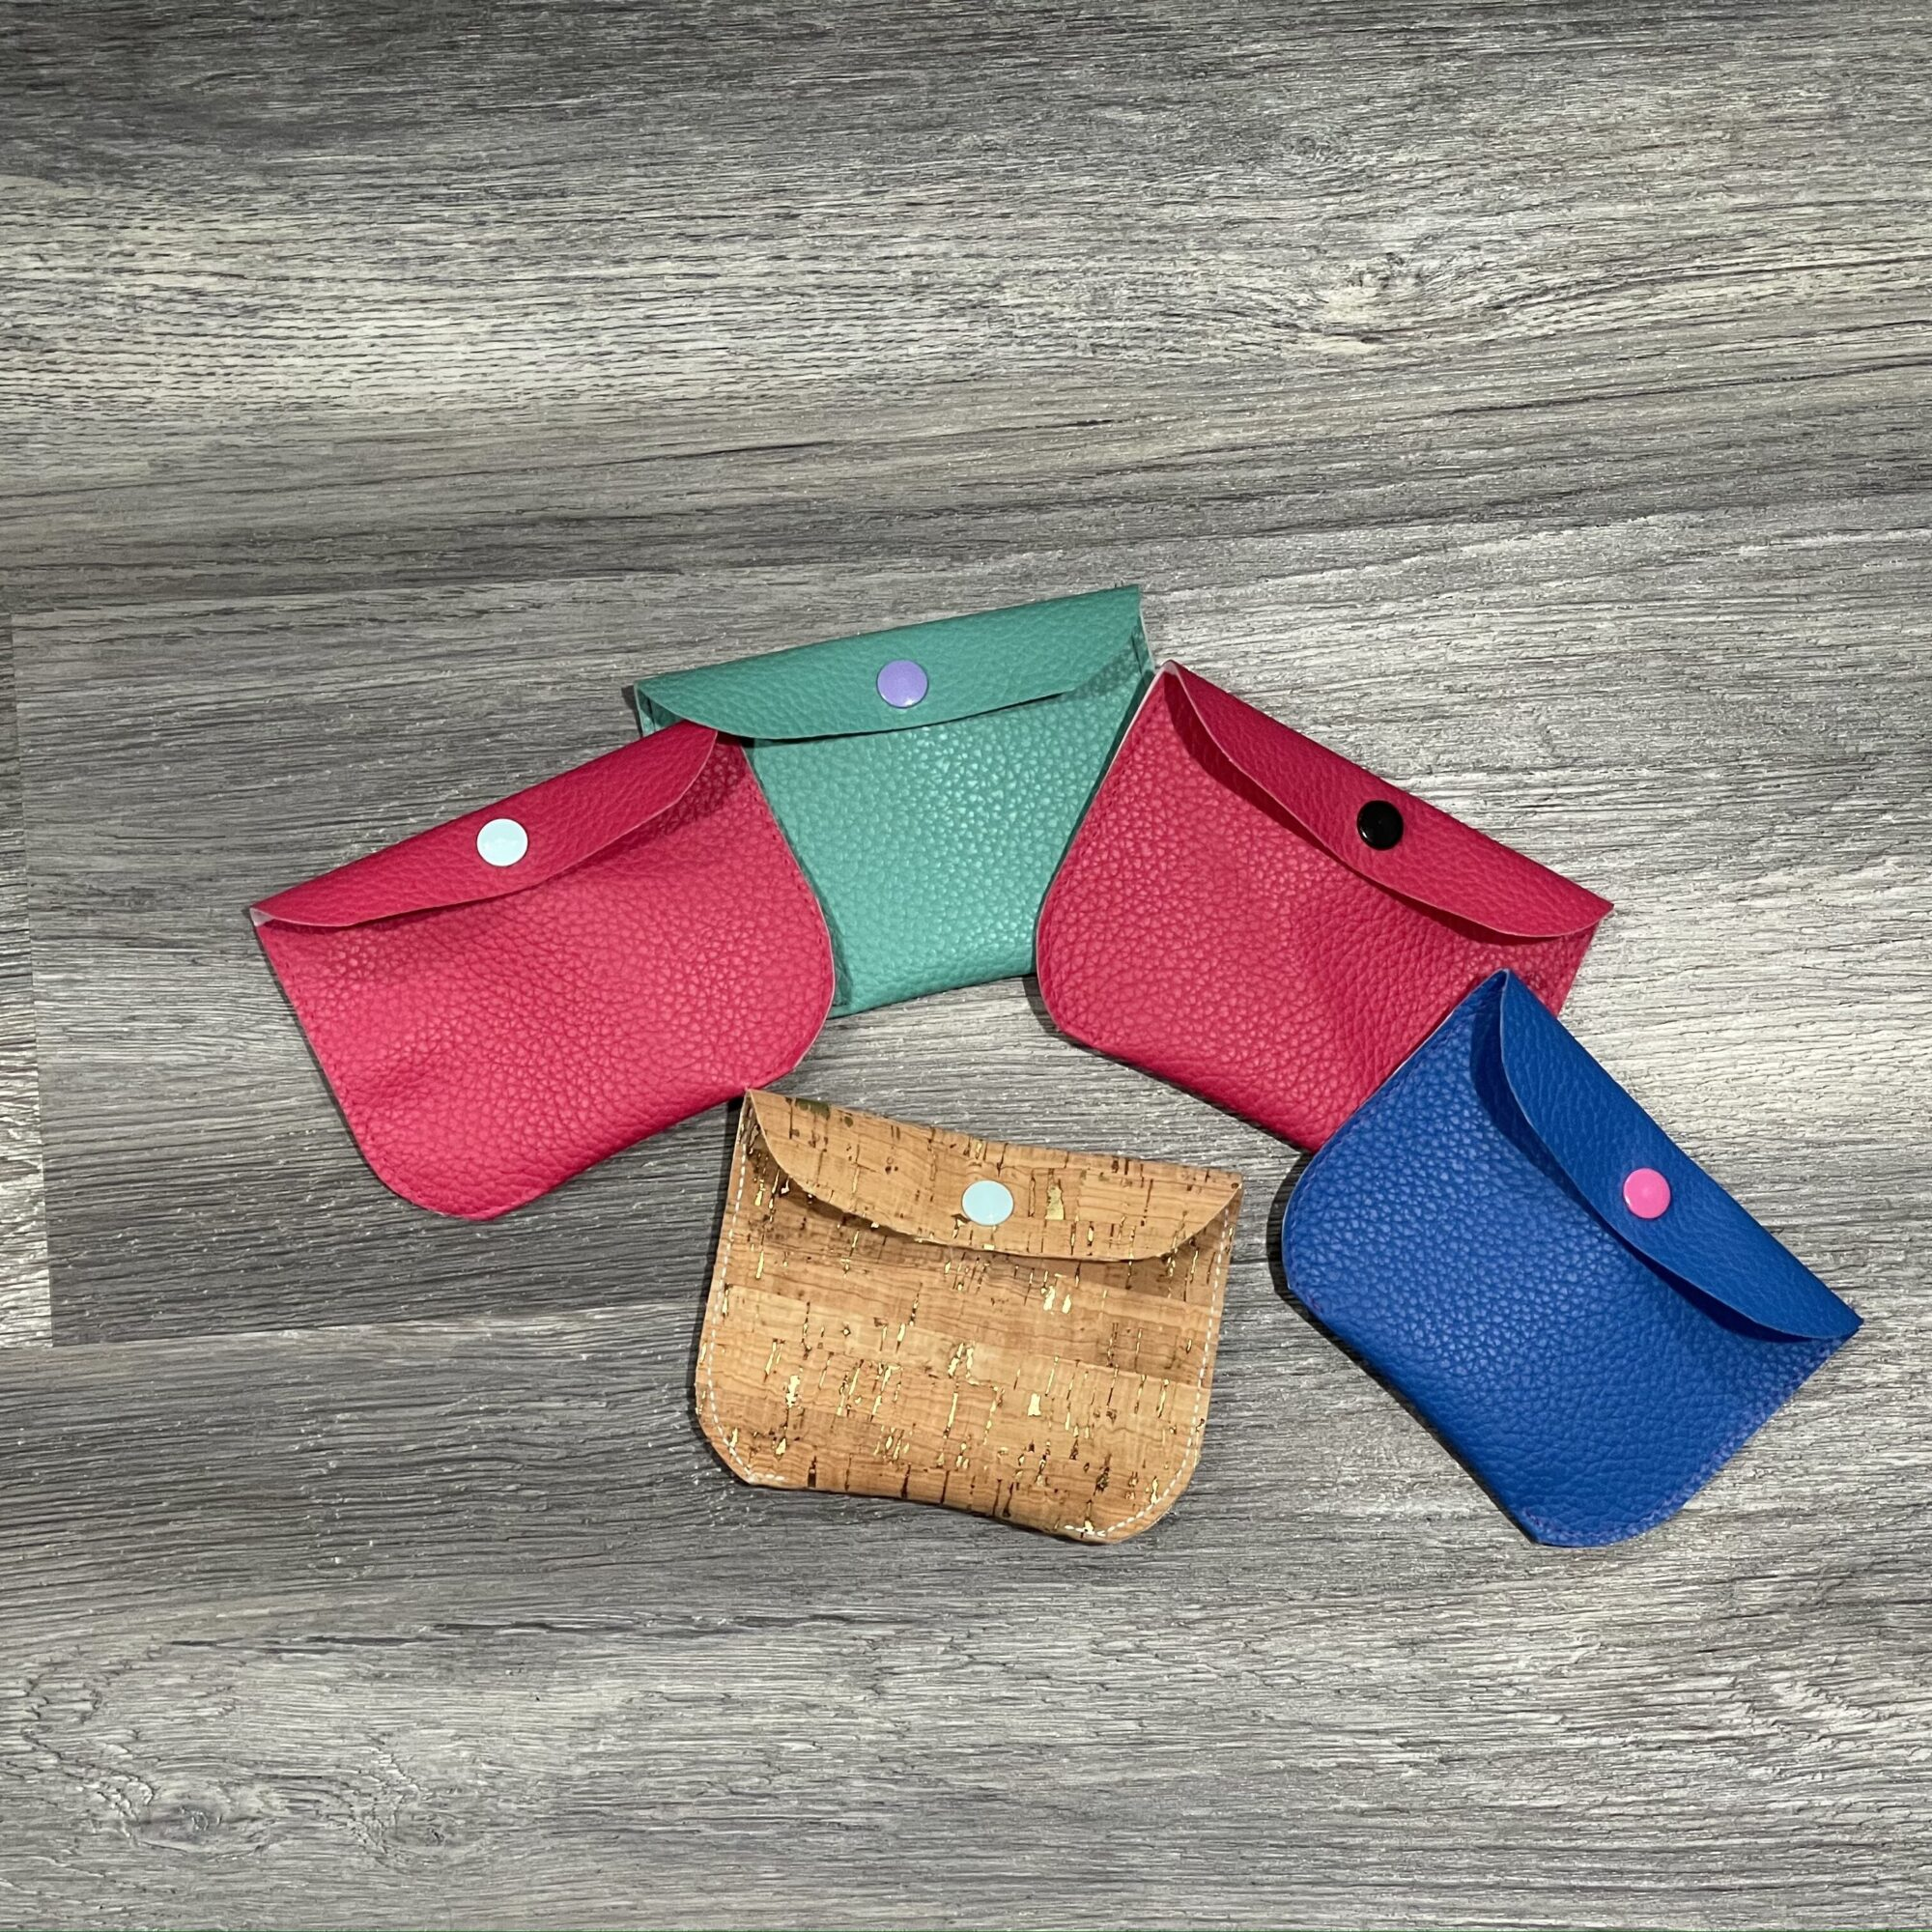 kendall snap pouch by crafty gemini